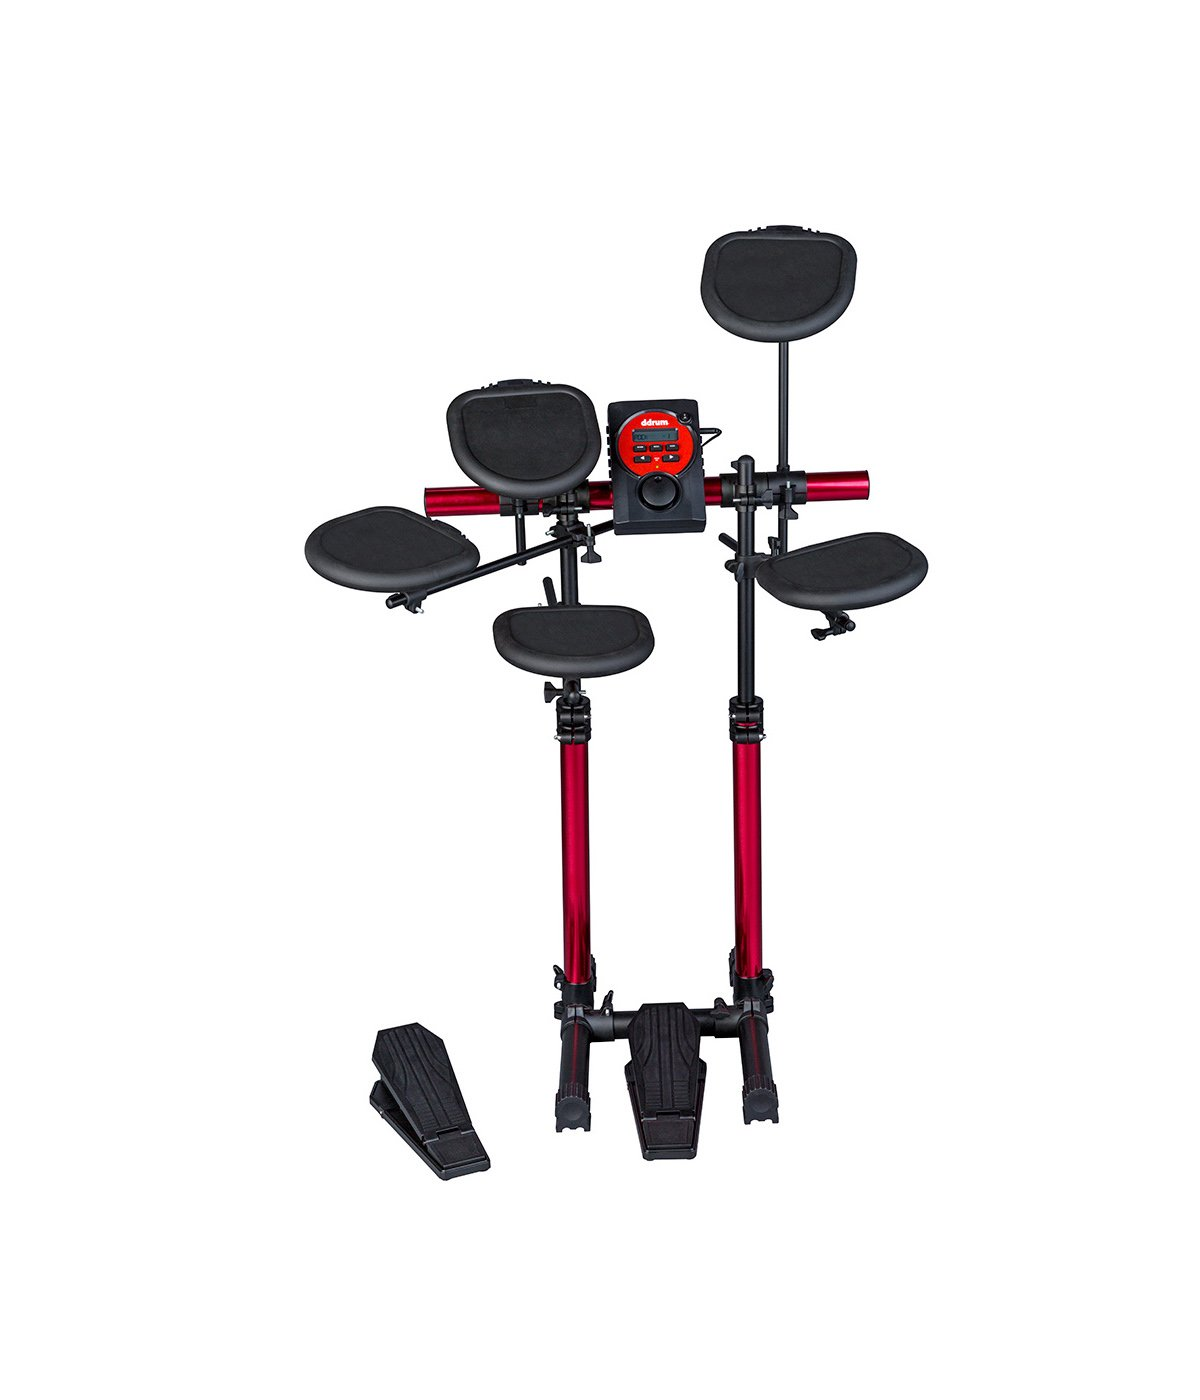 Ddrum Beta D Lite 4-Piece Electronic Drum Set